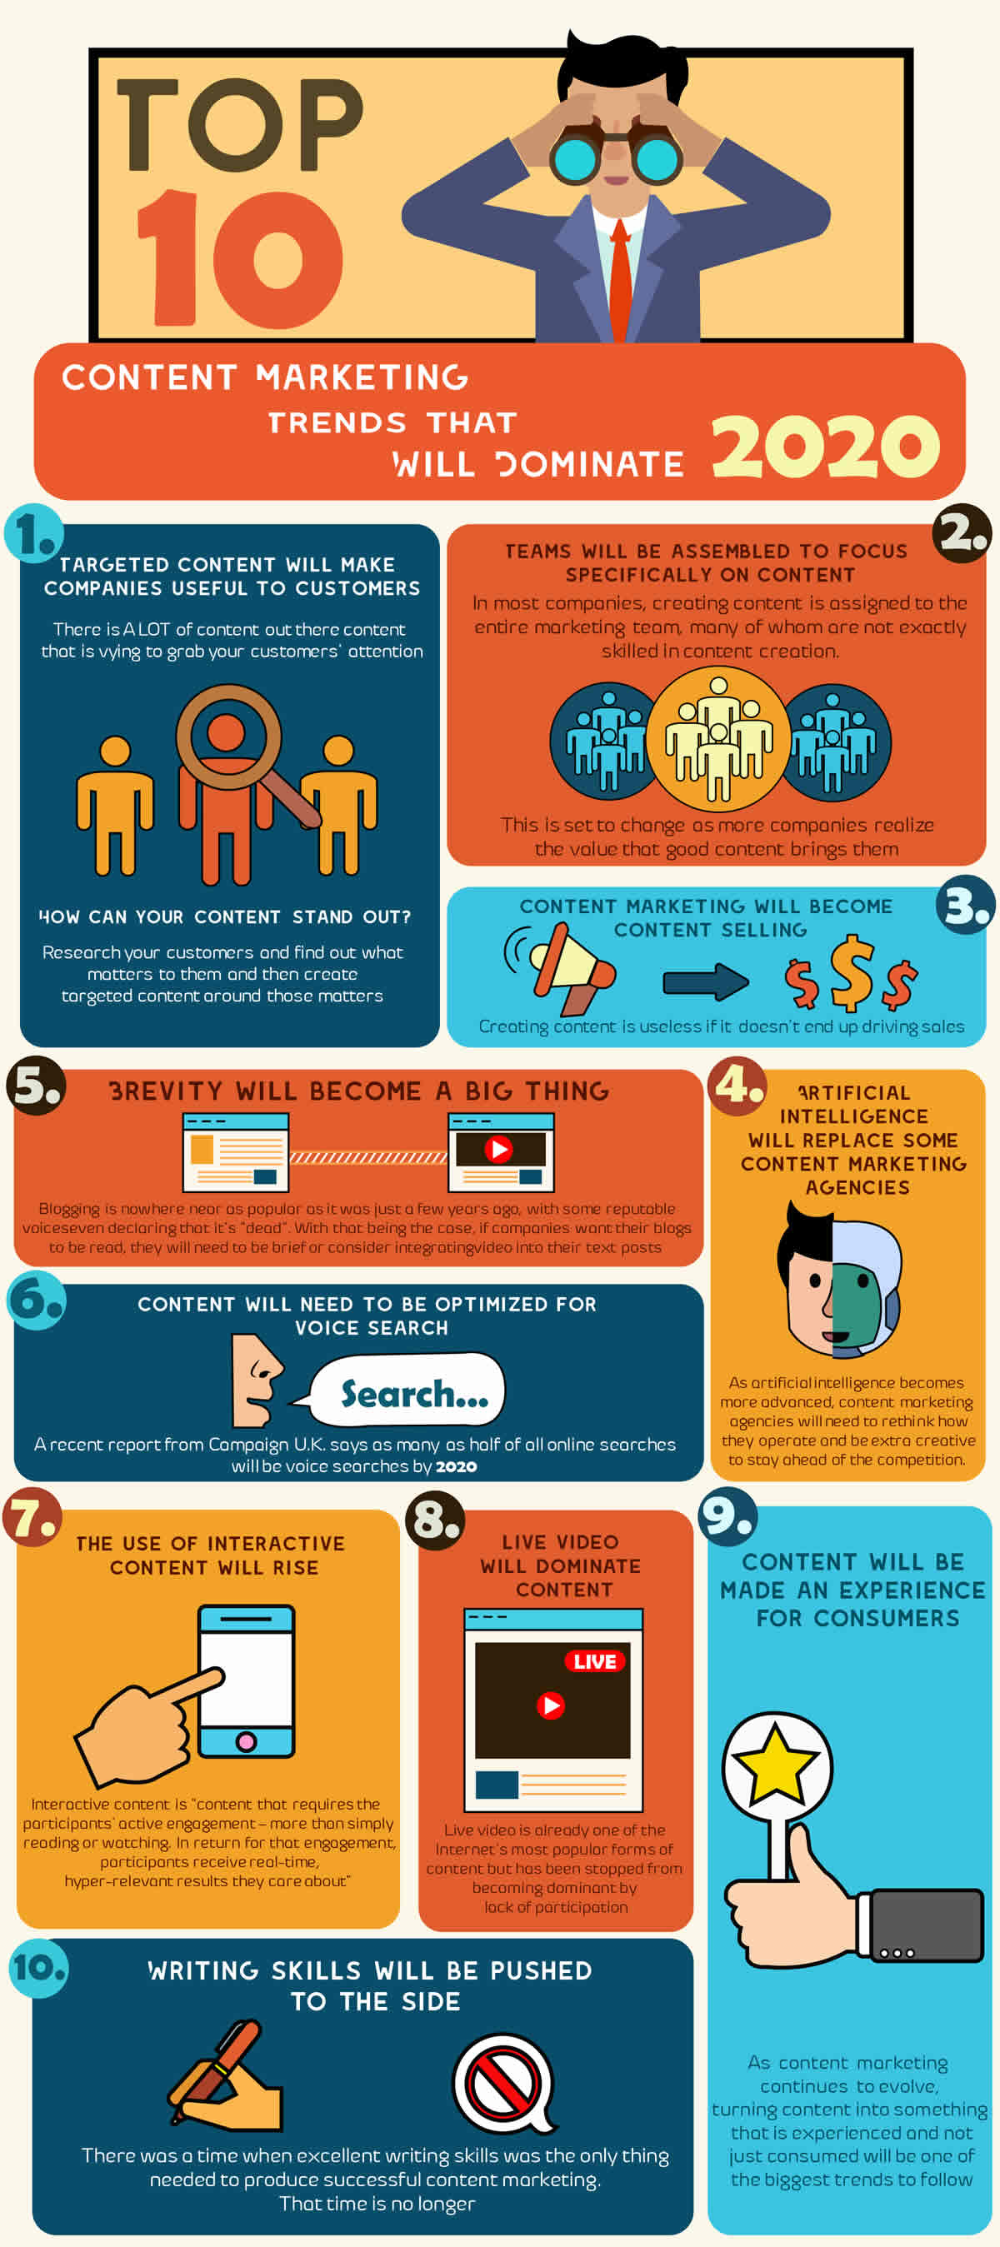 Top 10 Content Marketing Trends In 2020 Infographic Clayton Nc Web Design In 2020 Infographic Marketing Marketing Trends Content Marketing Institute